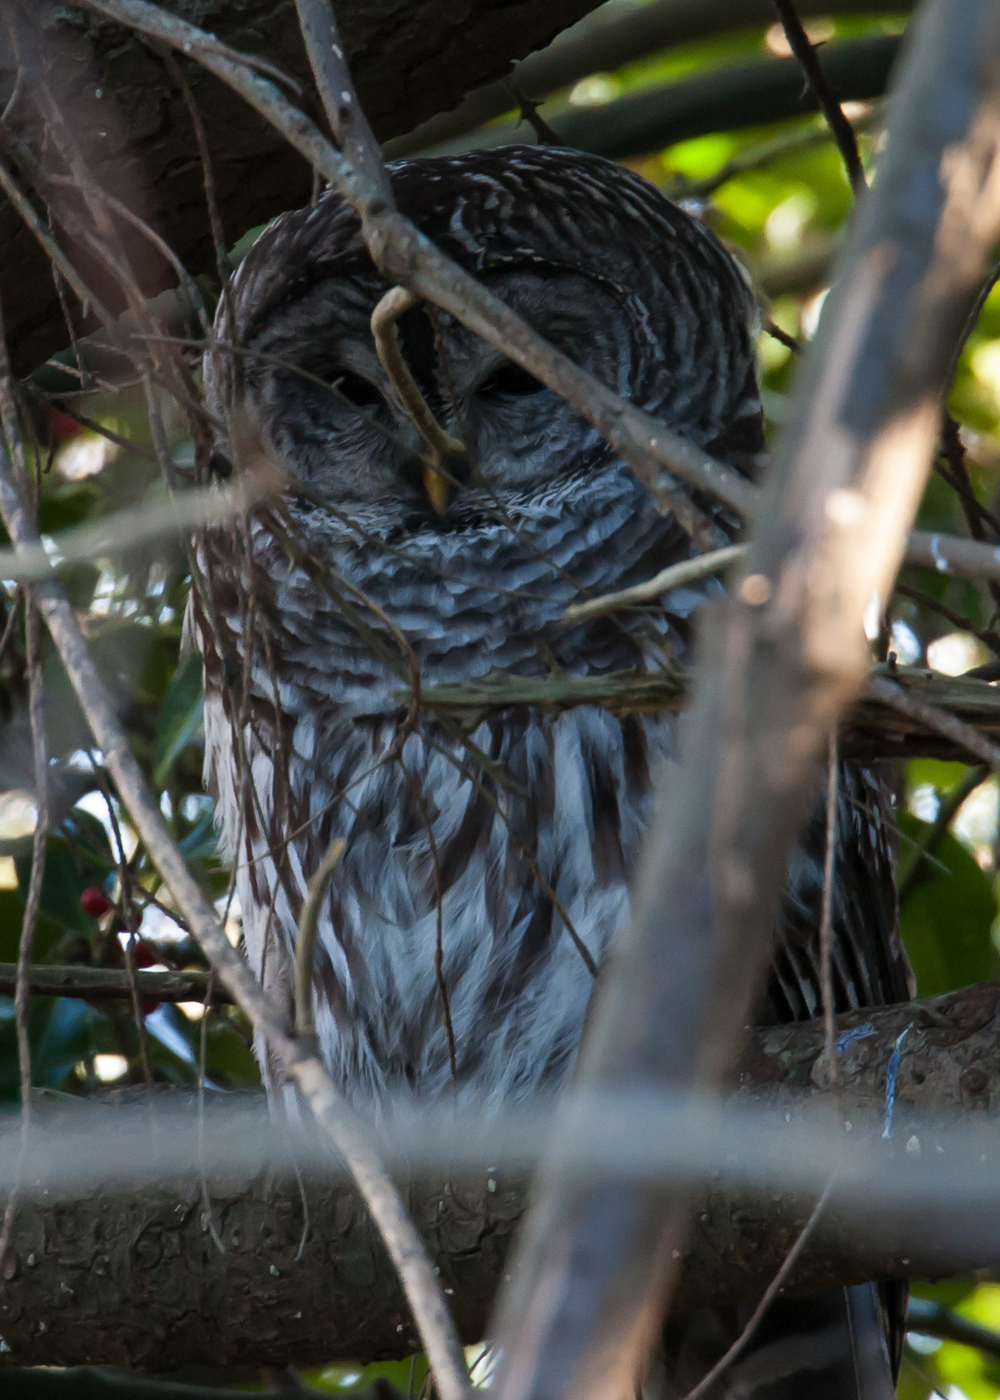 This barred owl was sitting deep in the trees, totally hidden in shadow. I only managed one decent picture.